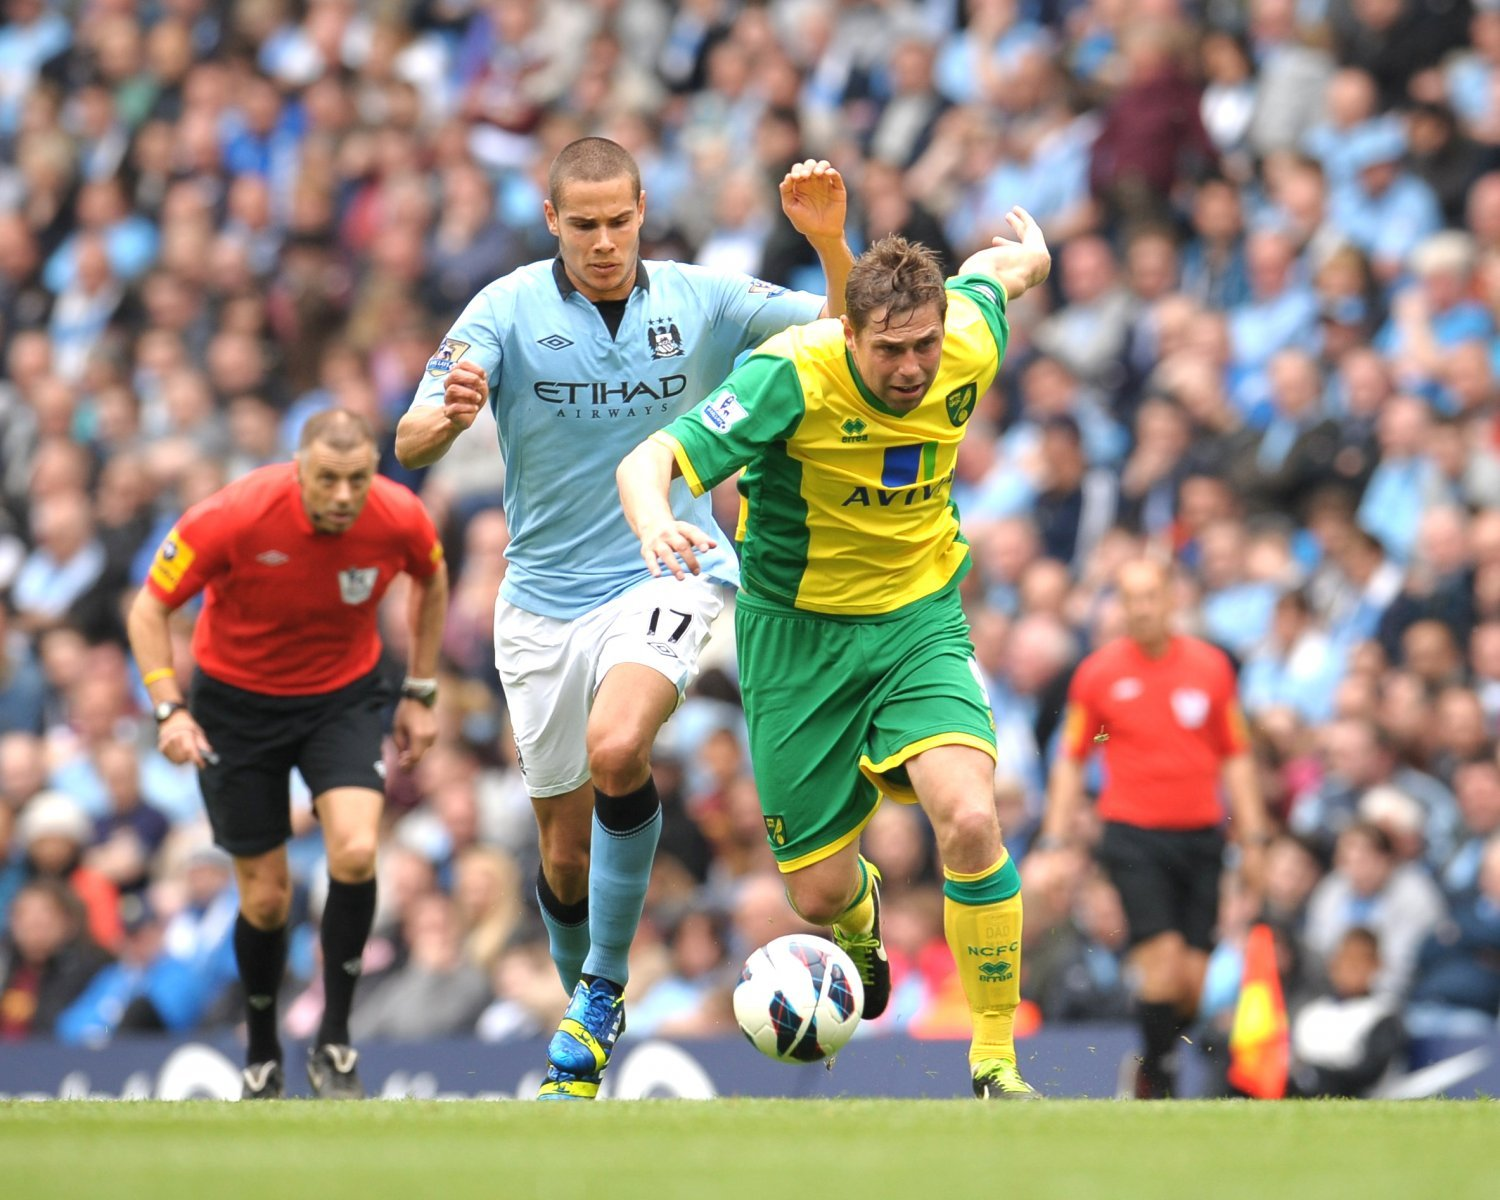 norwich city vs sheffield wednesday - photo #27